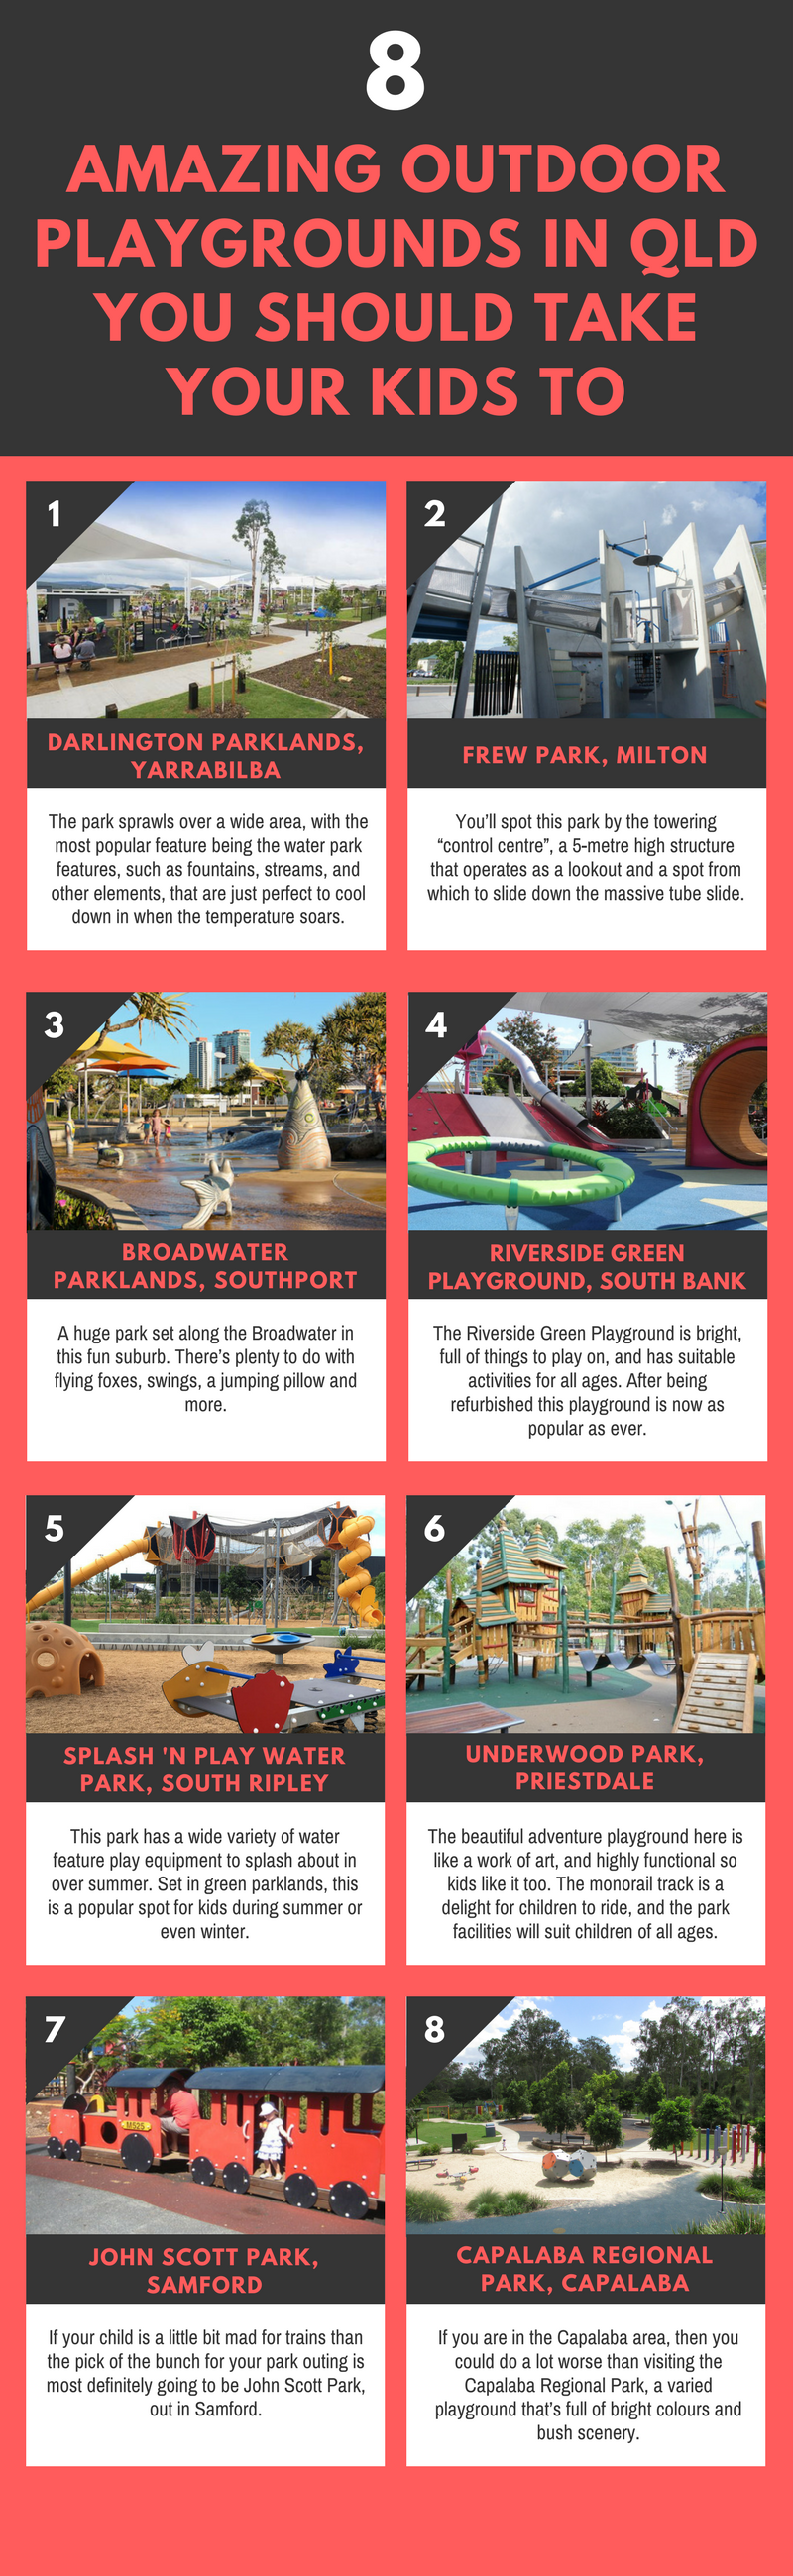 8 Amazing Outdoor Playgrounds in QLD You Should Take Your Kids To